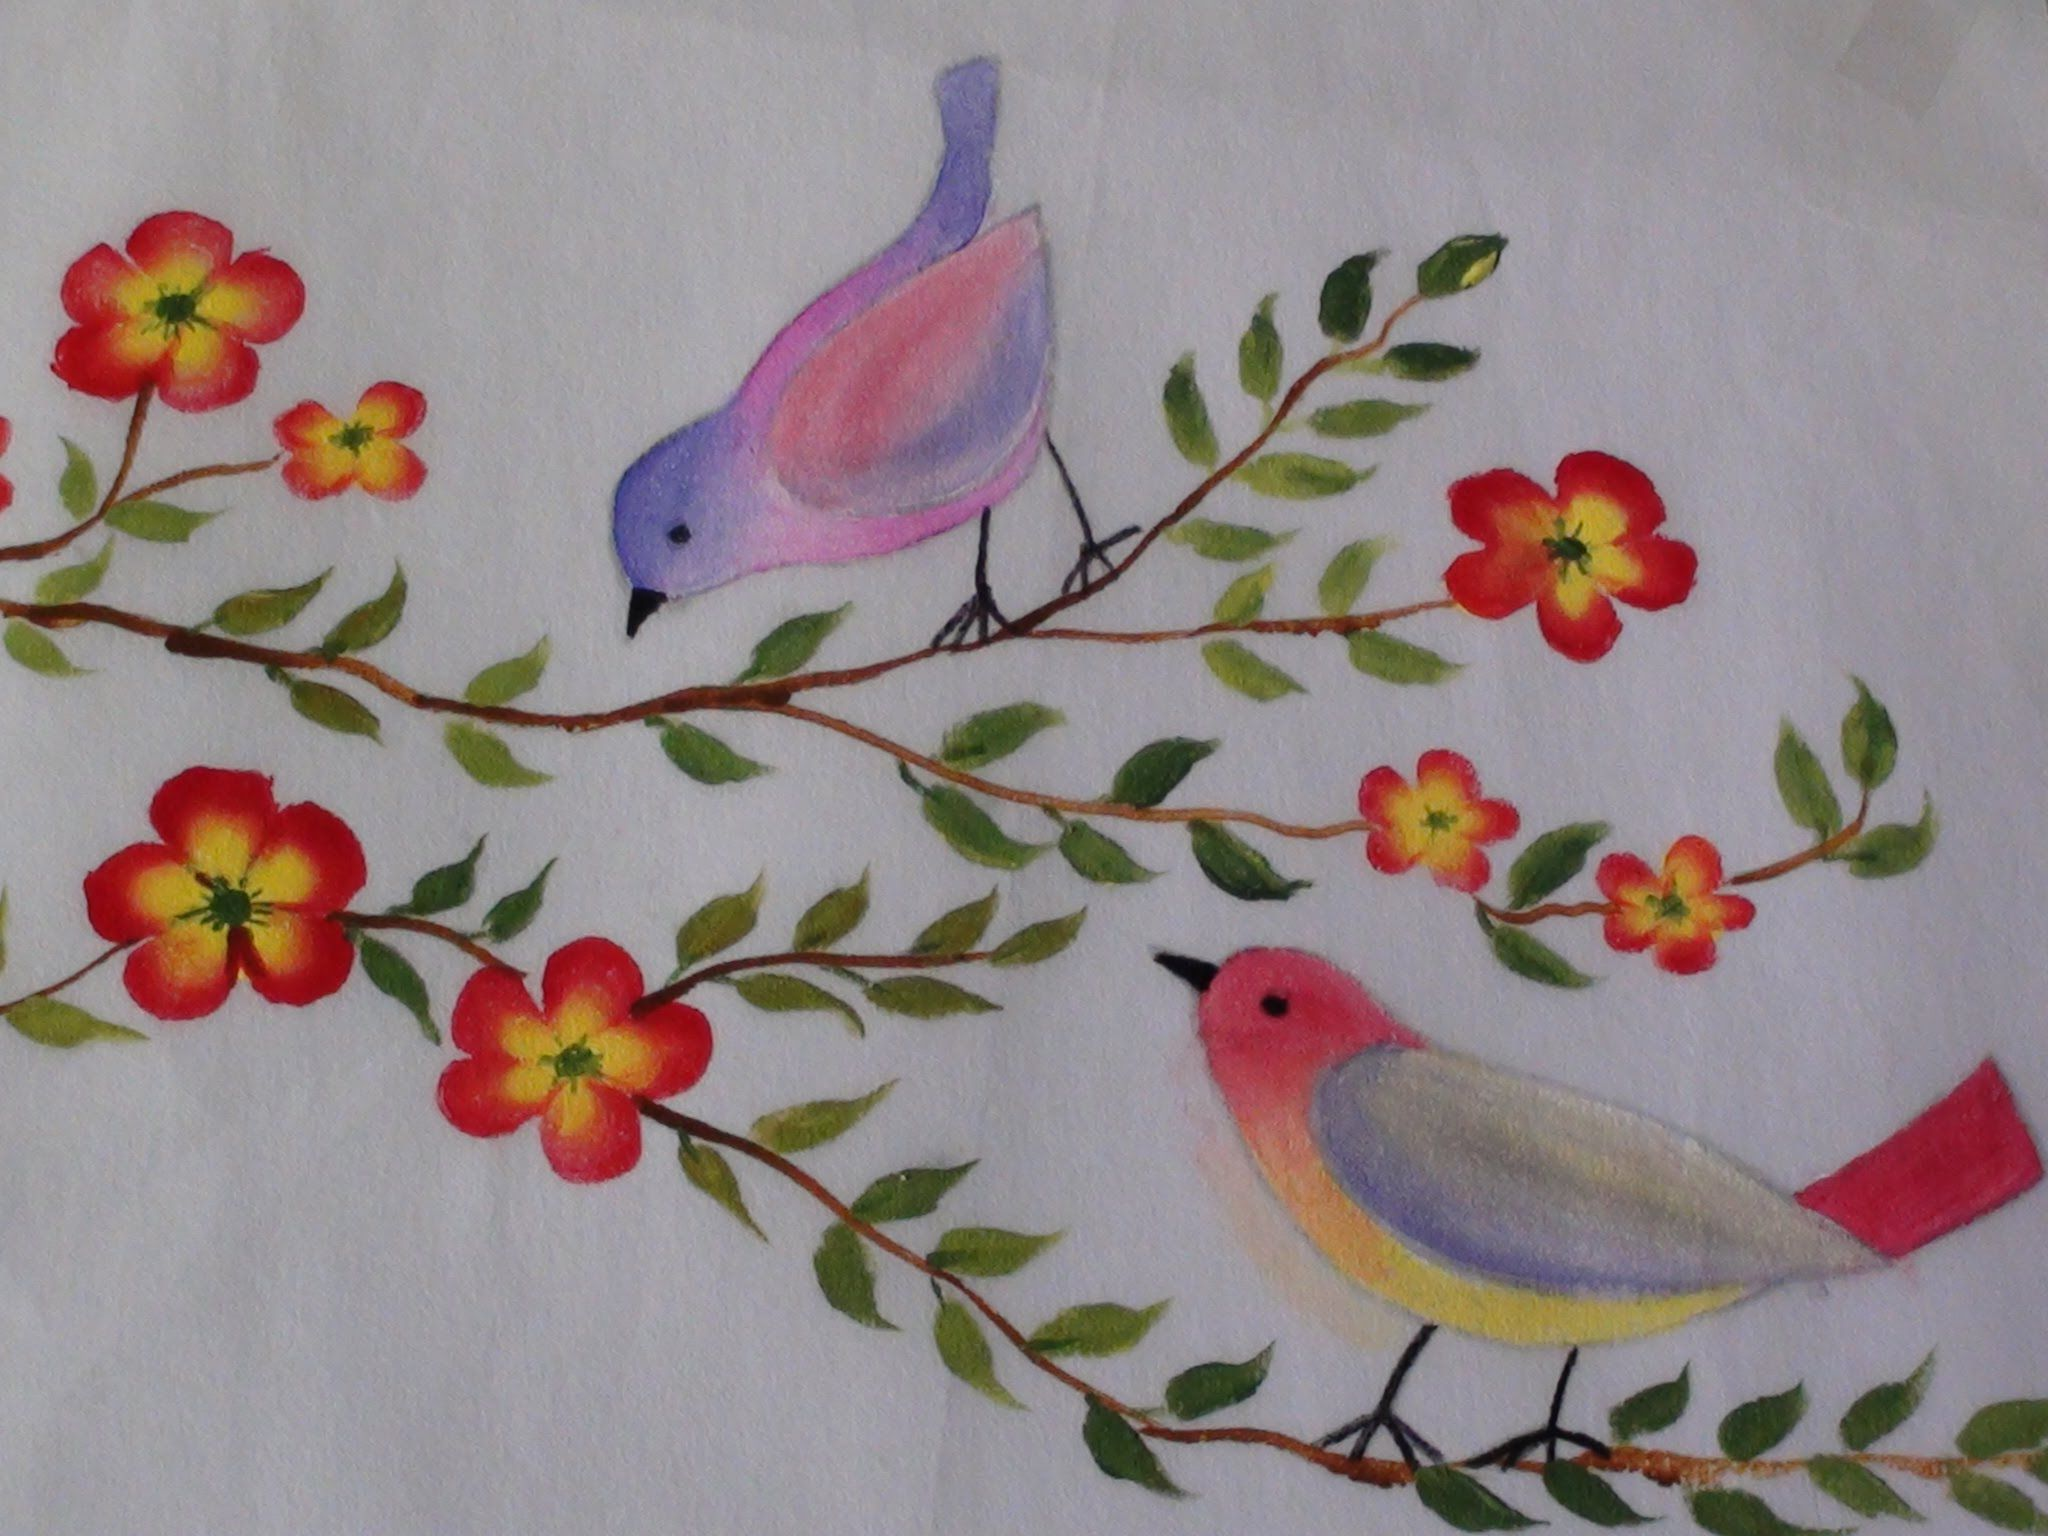 Bed sheets designs fabric painting - Birds And Flowers Fabric Painting Tutorial 14 Youtube